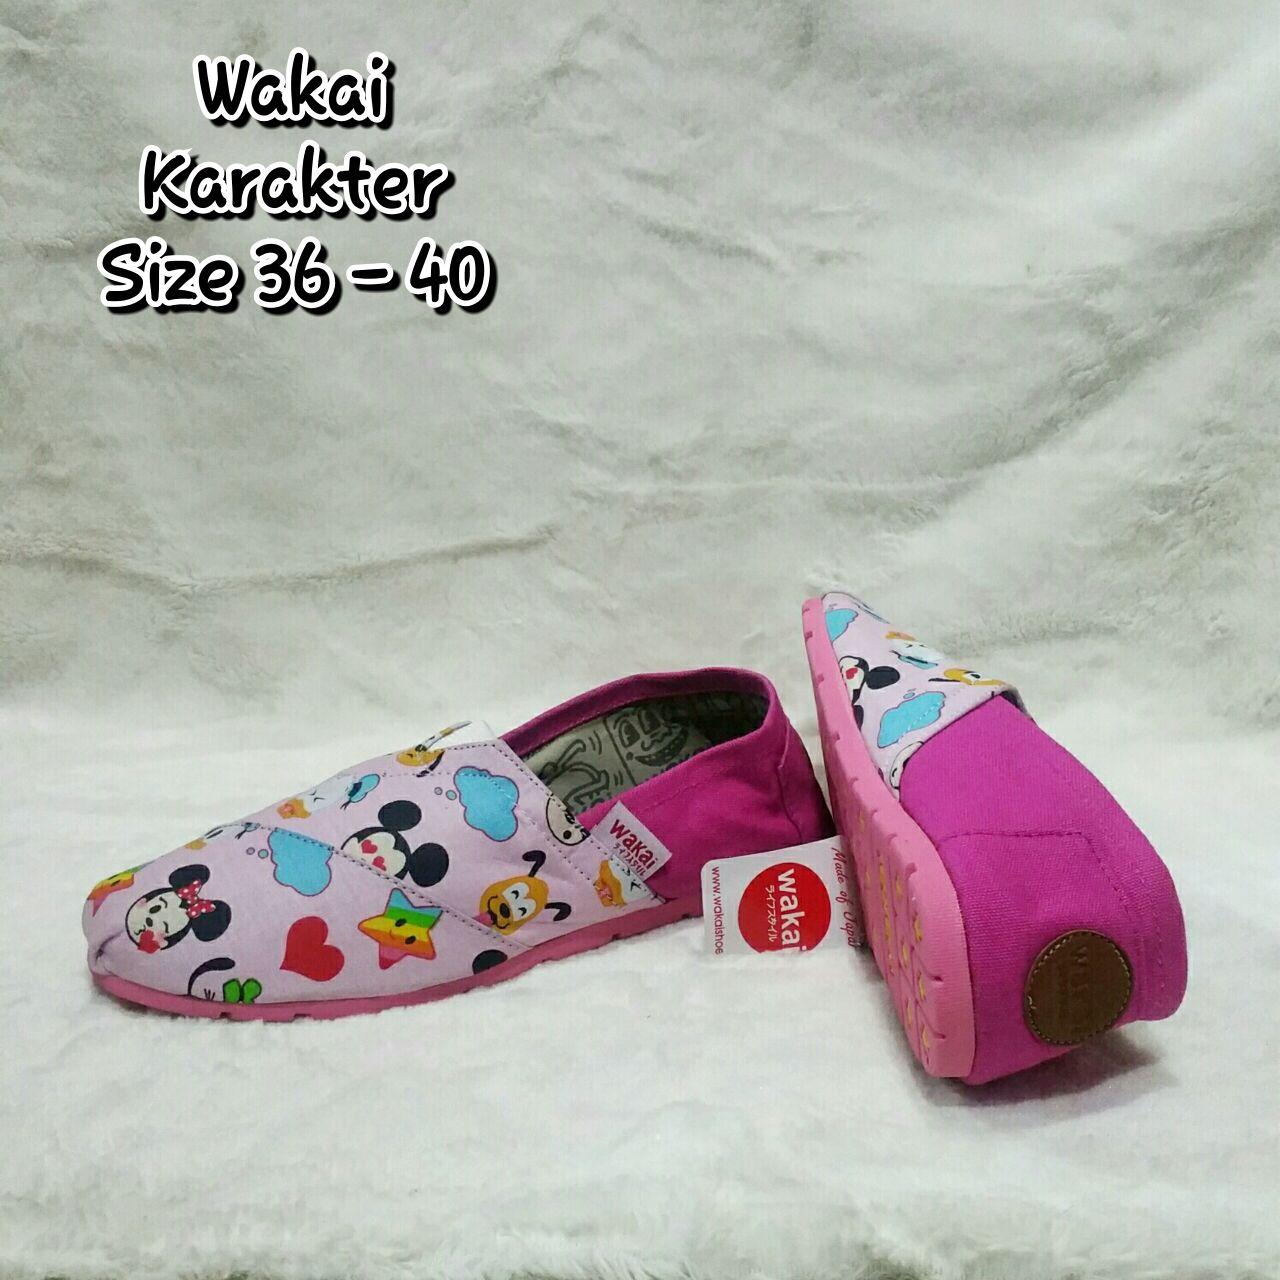 Wakai Mickey Pink uk36-40